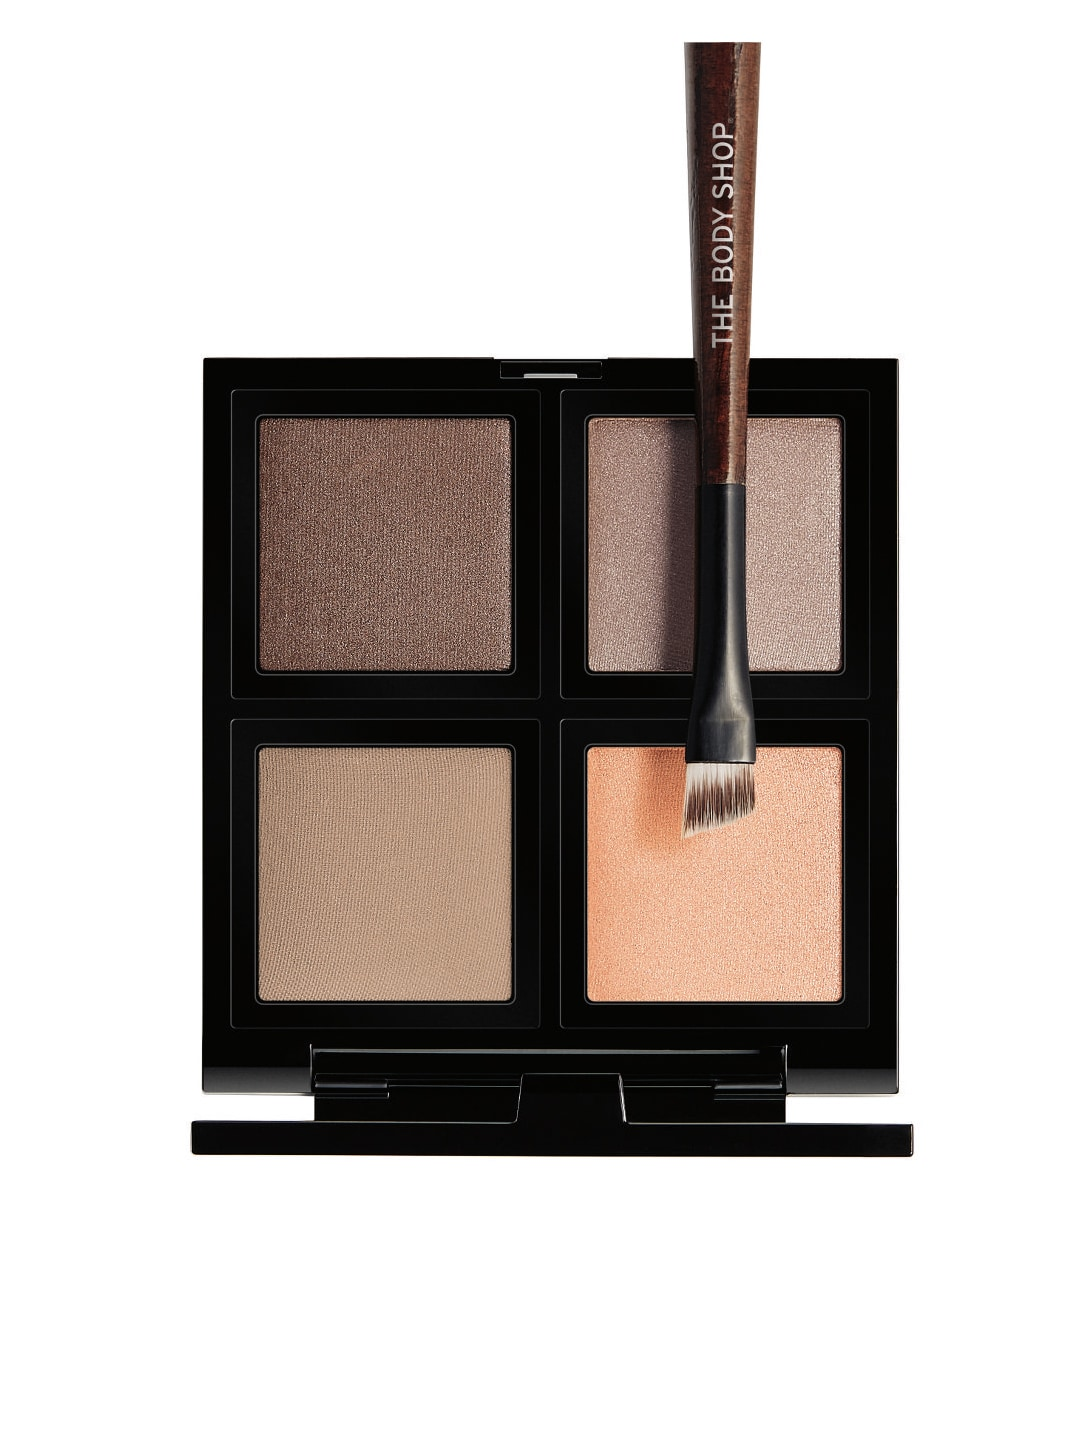 THE BODY SHOP Eyeshadow Palette image